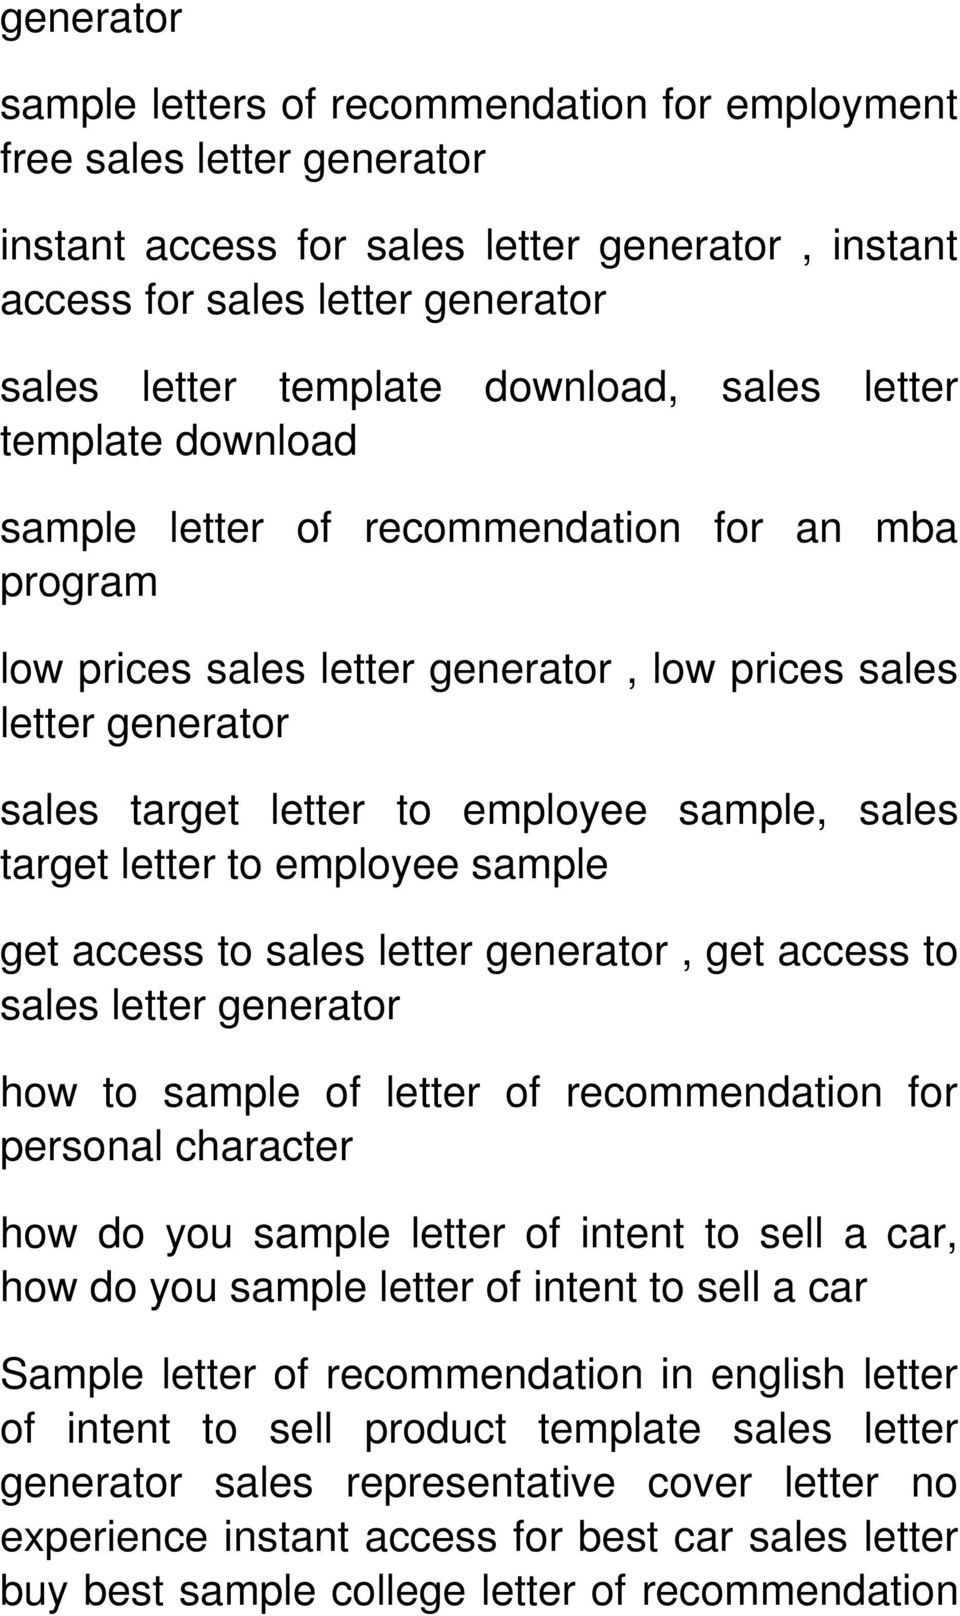 letter of recommendation for personal character how do you sample letter of intent to sell a car, how do you sample letter of intent to sell a car Sample letter of recommendation in english